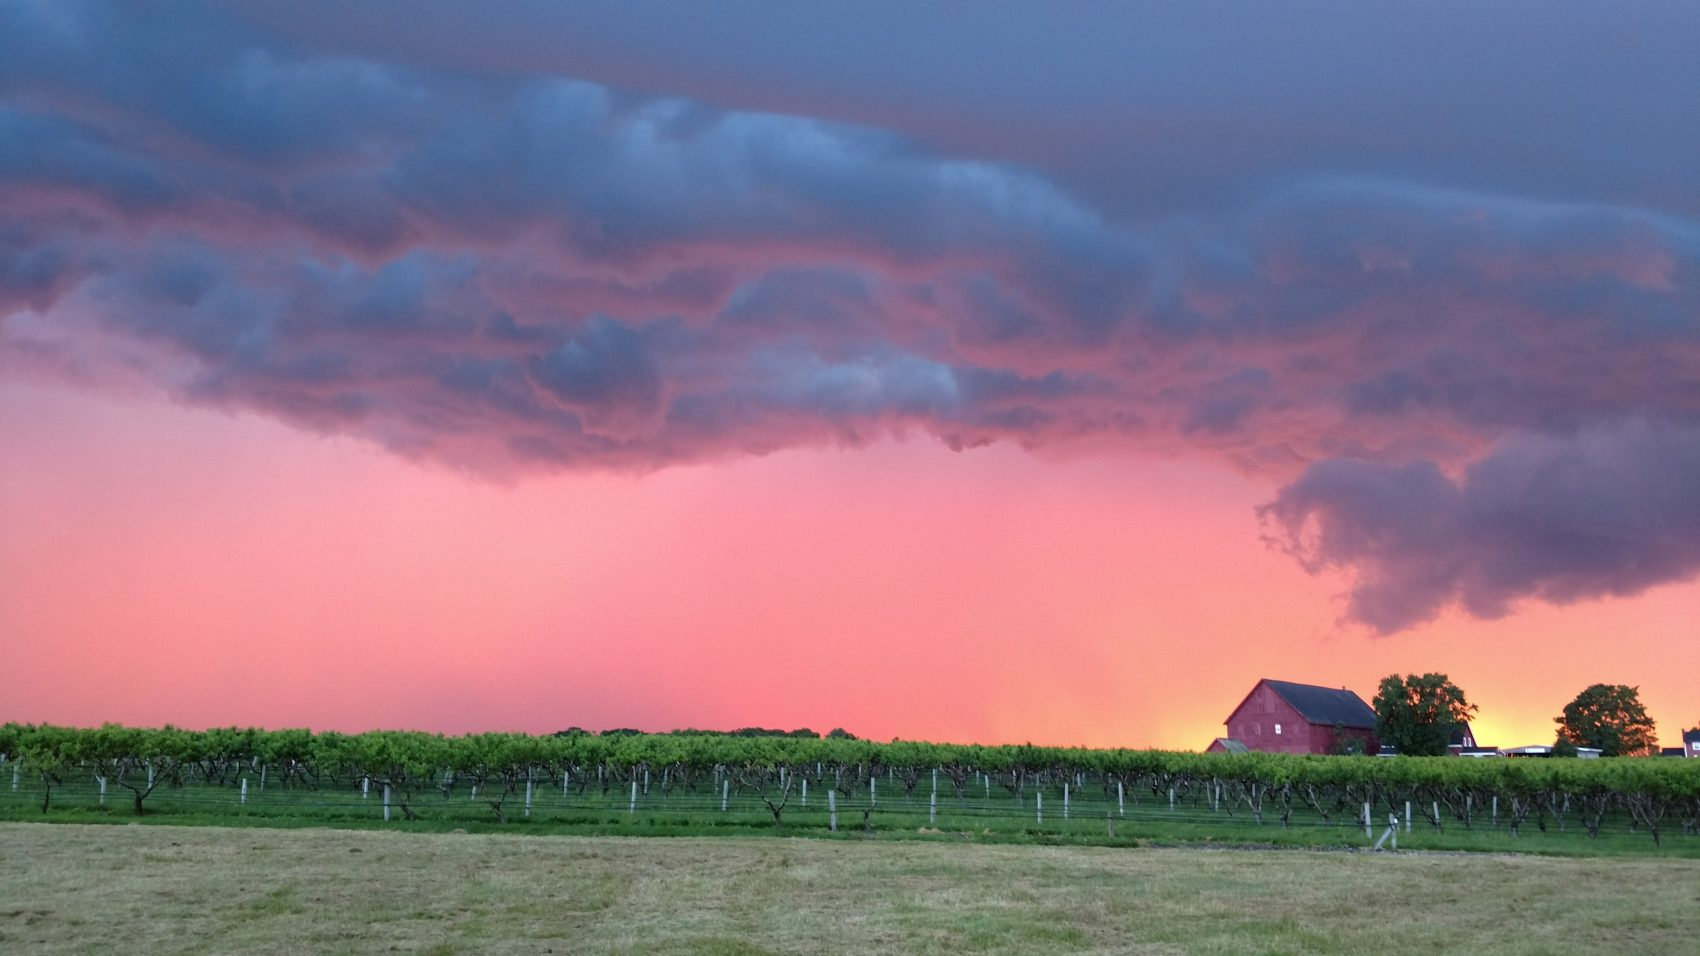 Thunderstorms move across Lookout Farm in South Natick Mass. on Tuesday evening